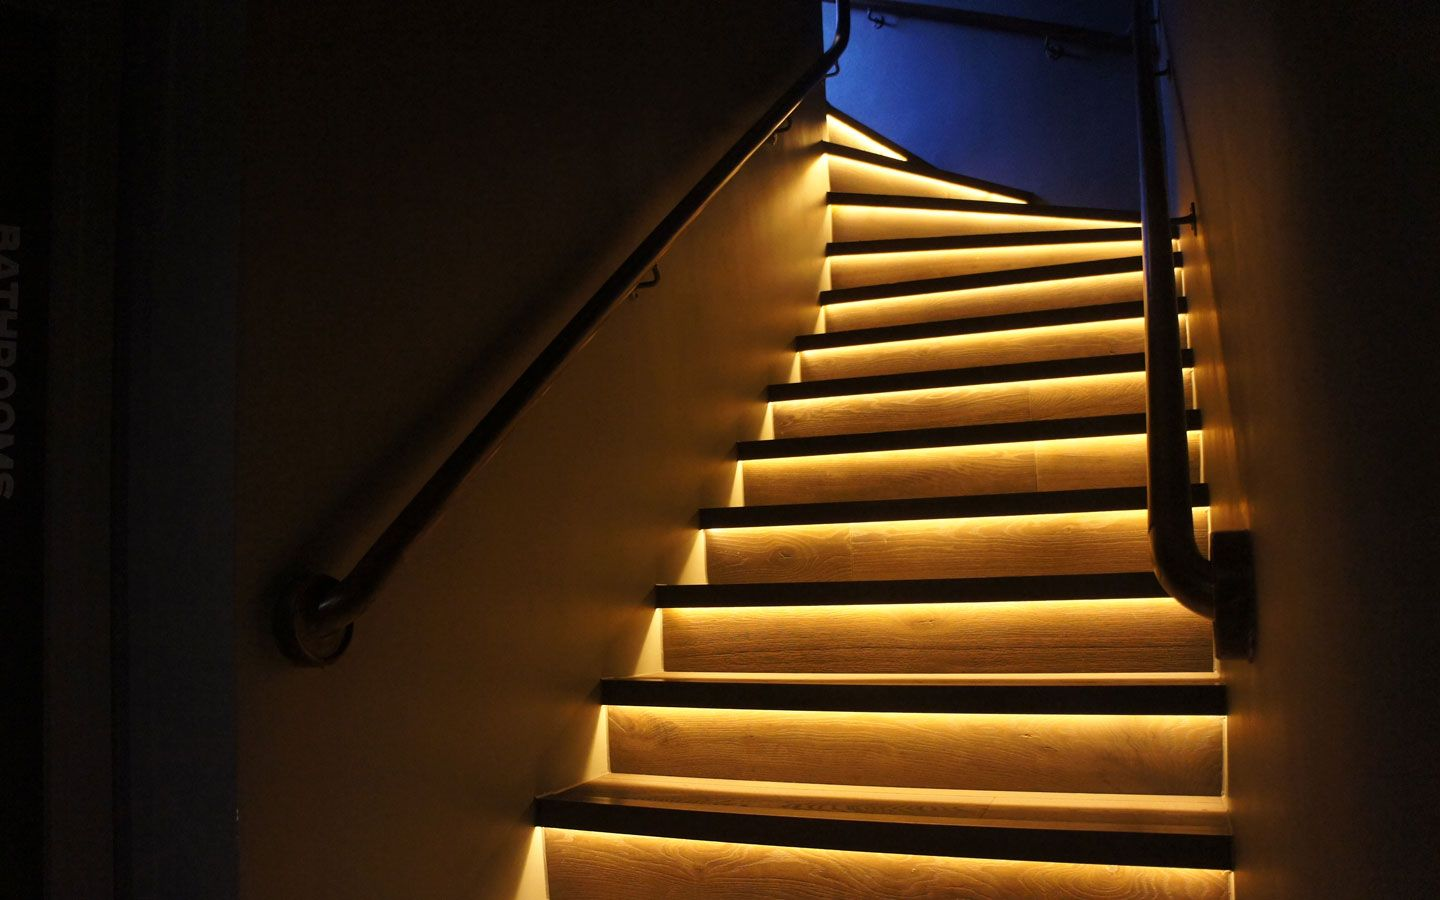 Wonderful LED Strip Used To Illuminate The Stairs Colours Range From: 2200K, 2400K,  2700Km